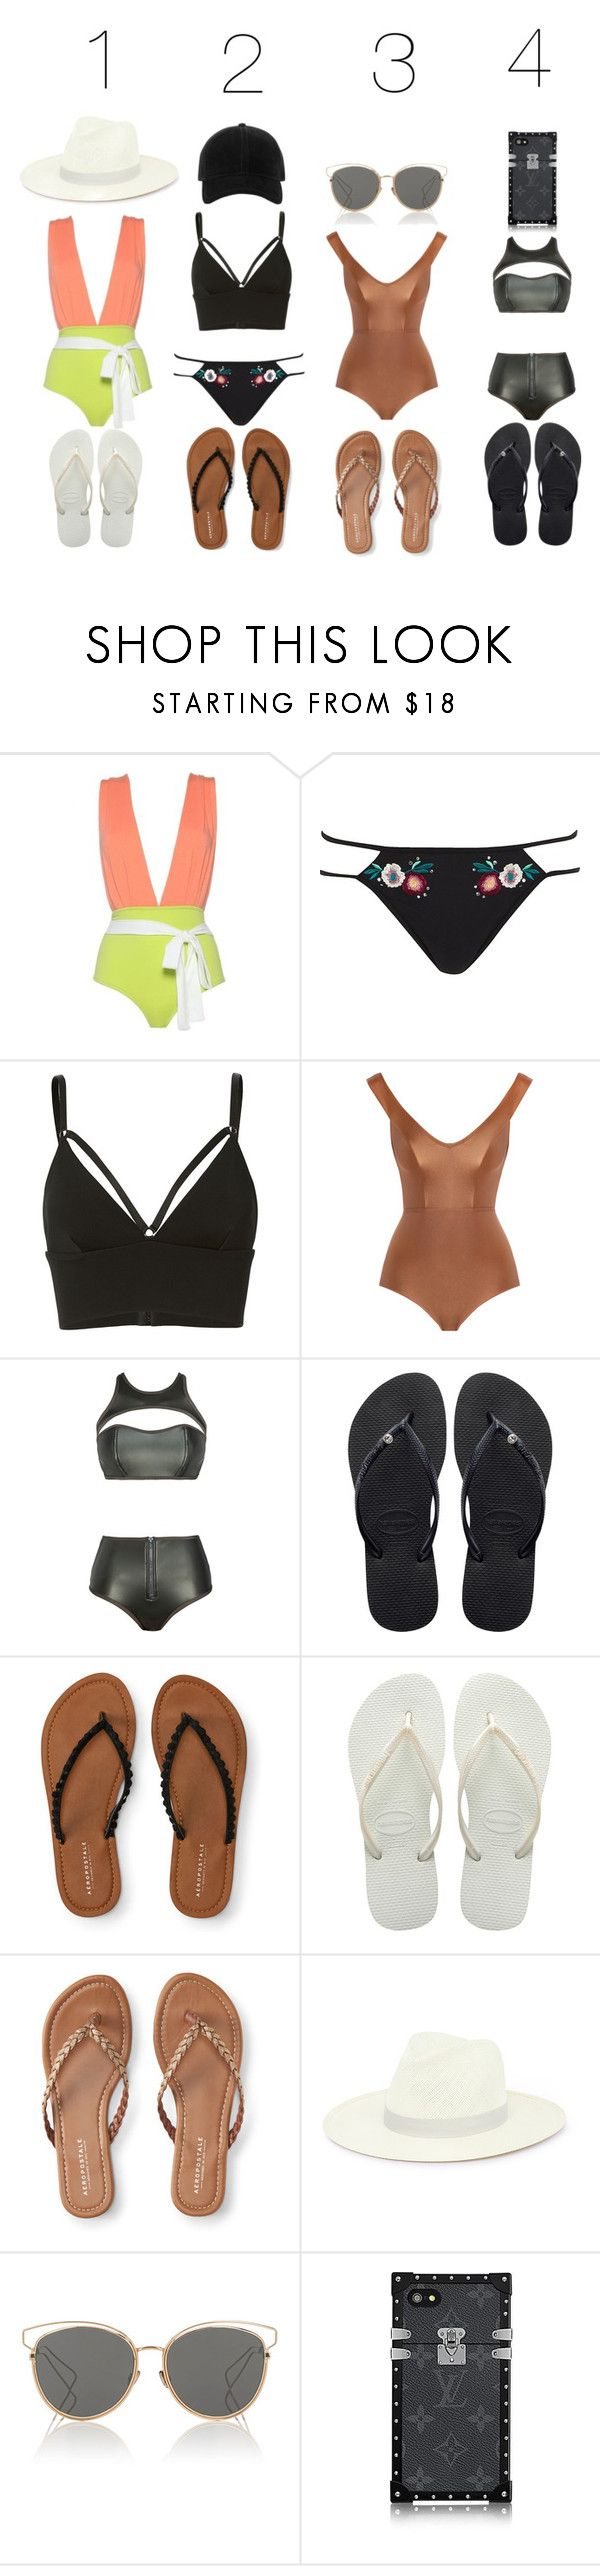 """""""Which One Would You Wear?"""" by bill-board ❤ liked on Polyvore featuring River Island, T By Alexander Wang, Zimmermann, Havaianas, Aéropostale, Janessa Leone, Christian Dior and rag & bone"""